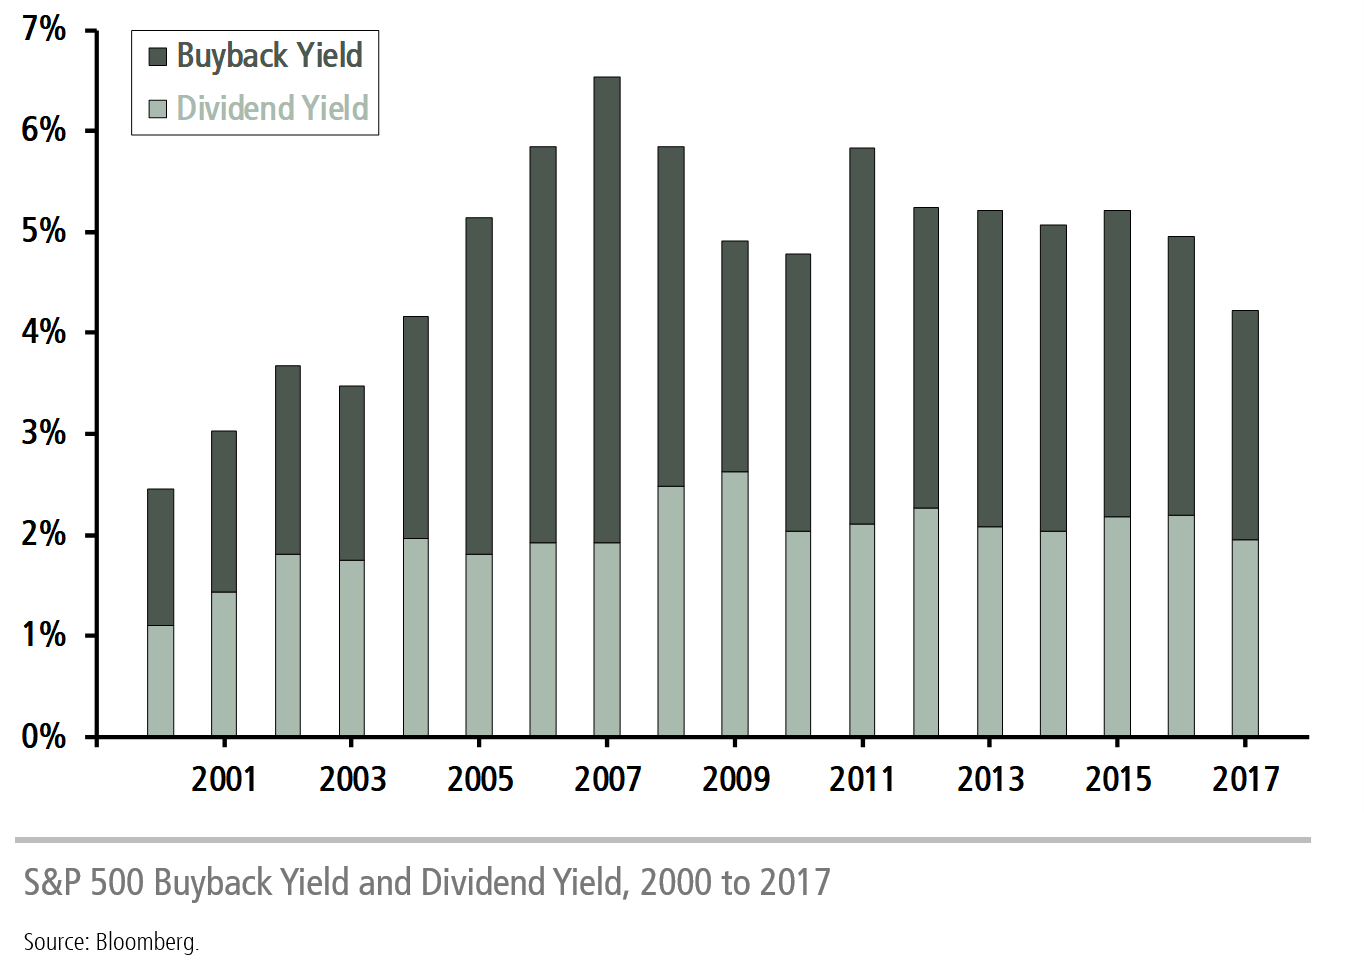 S&P 500 Dividend Yield and Buyback Yield